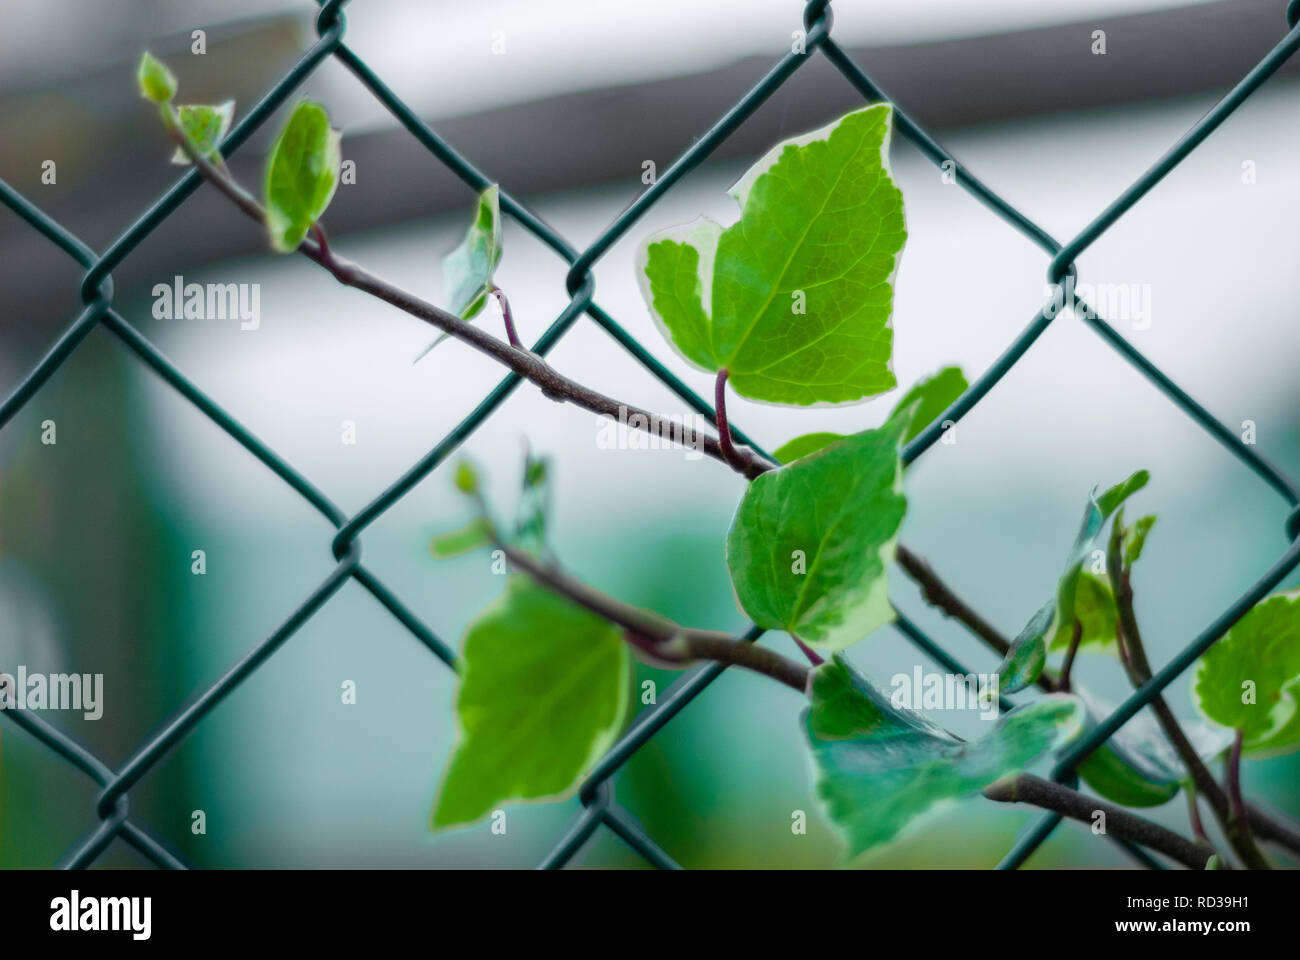 Leaves of climbing ivy, tangled to a wire grid - Stock Image